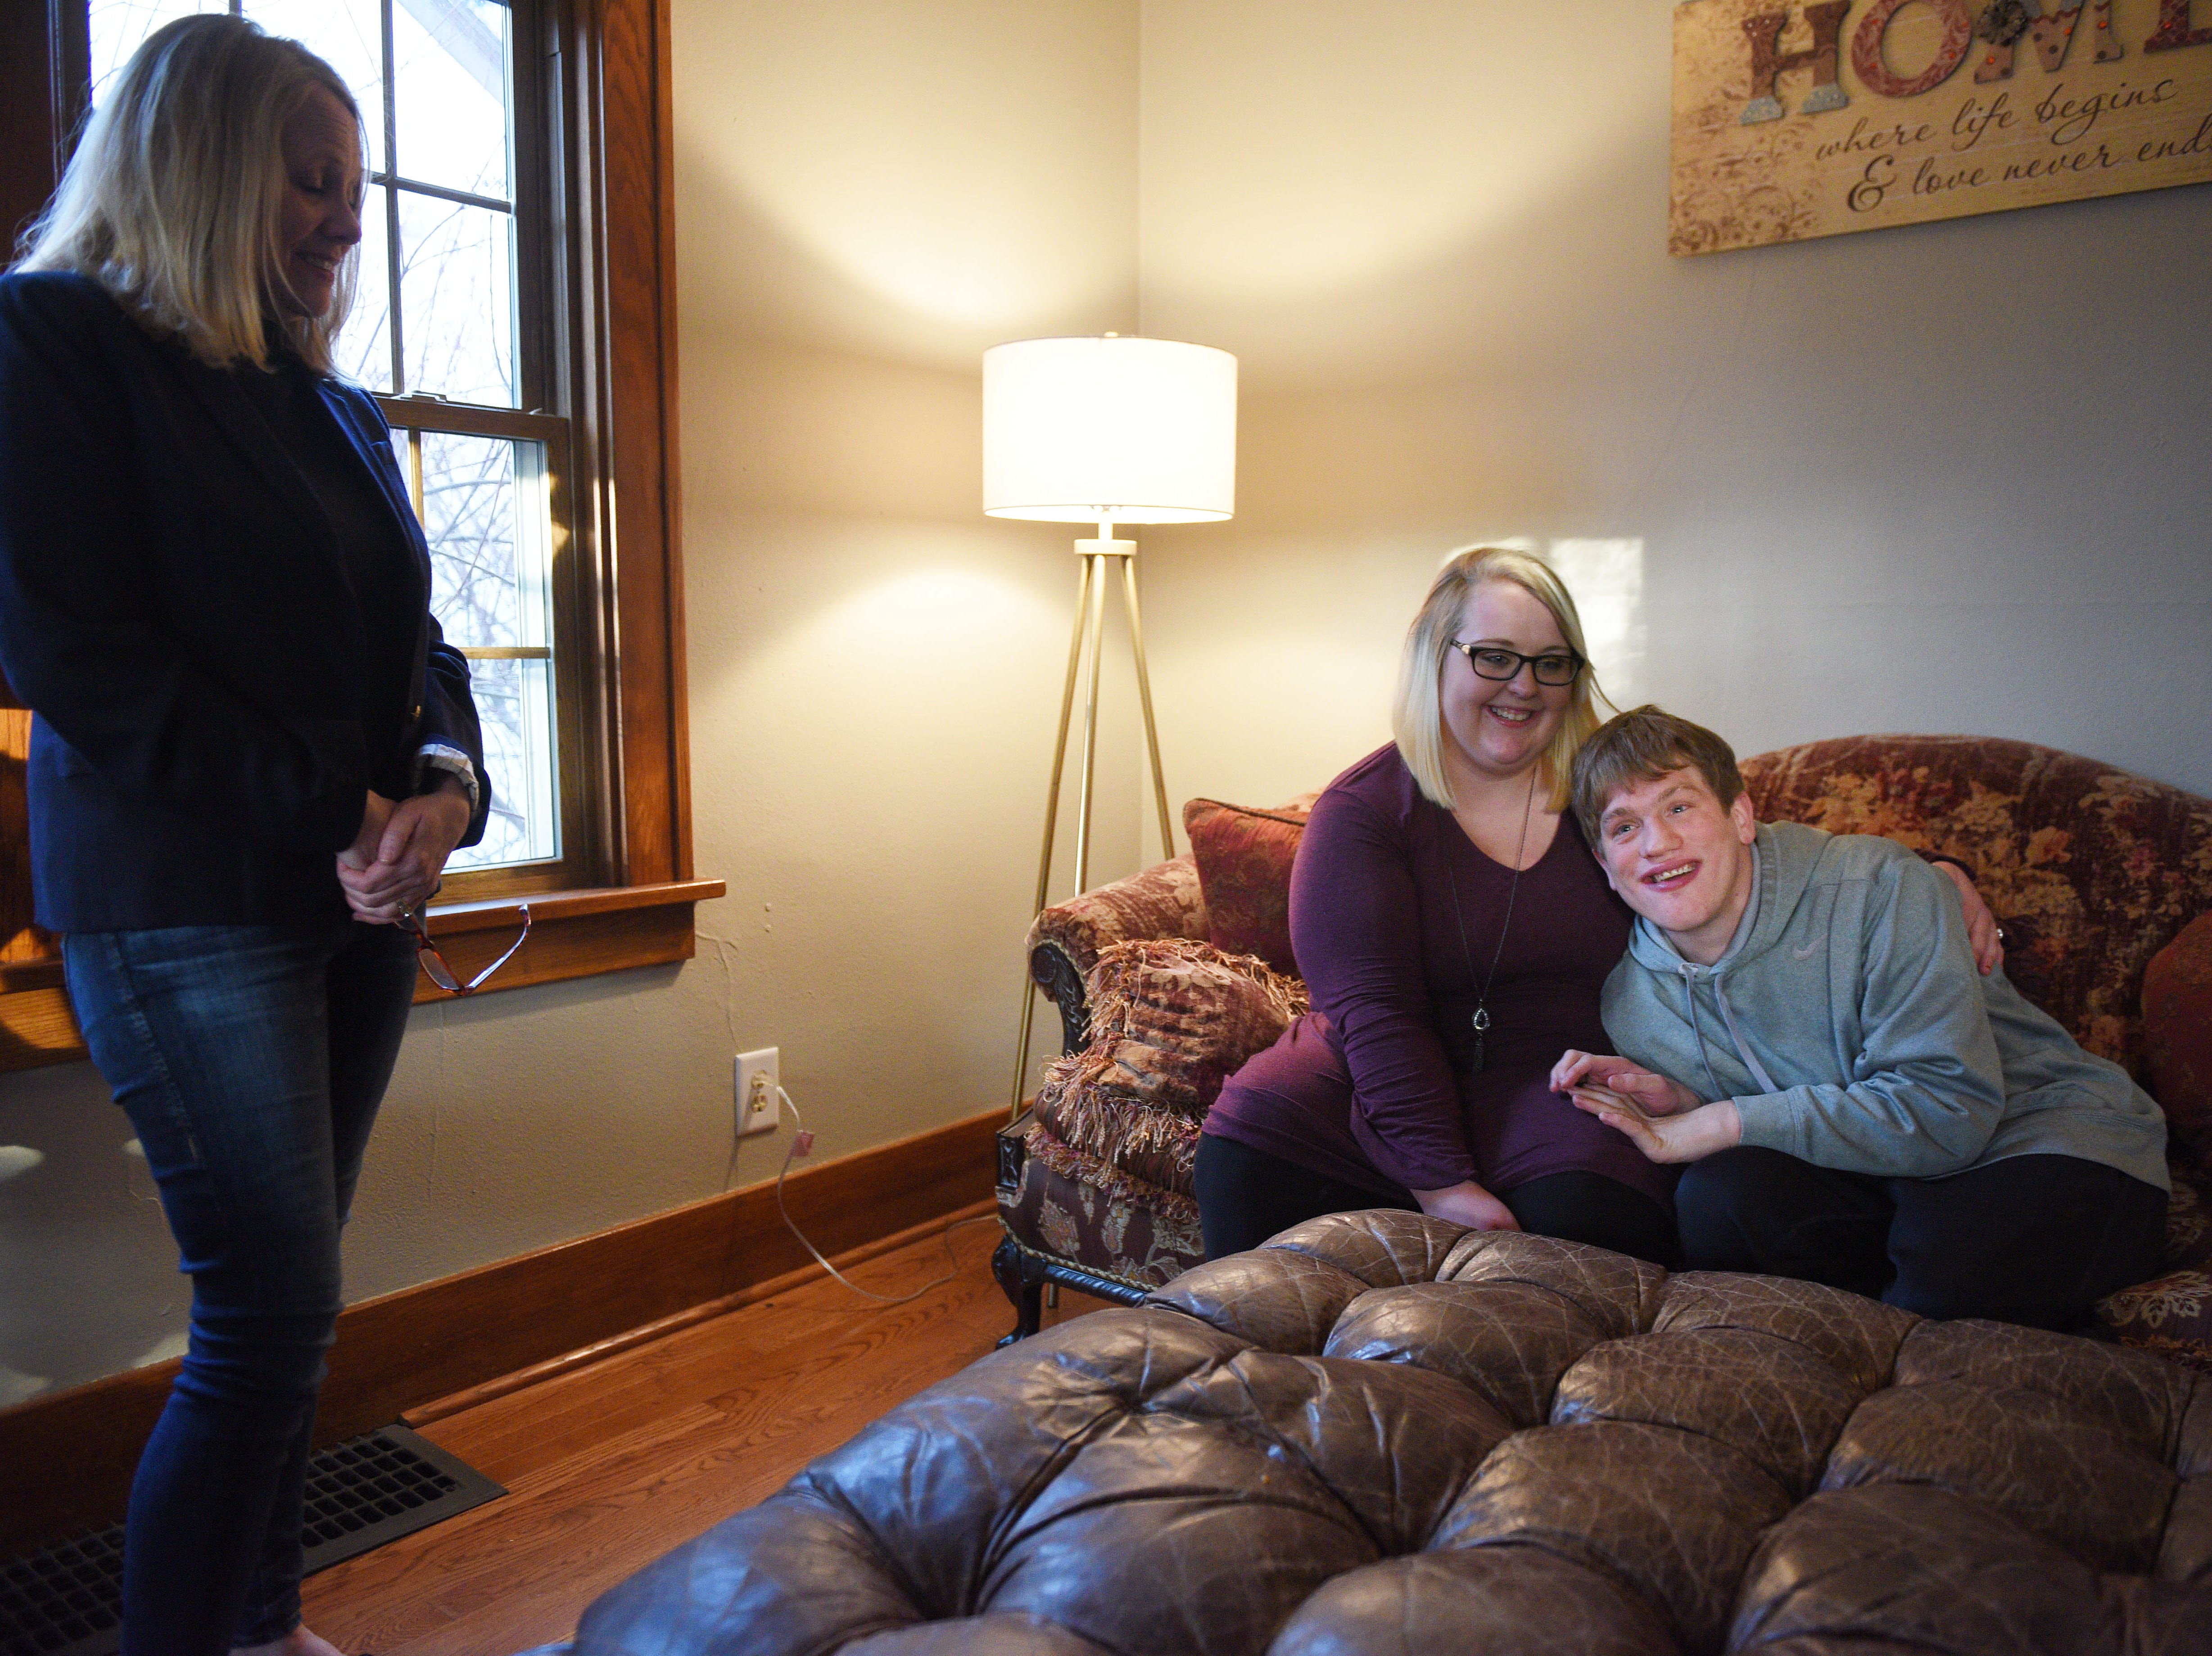 Ben Graff hangs out at his new house with his roommate Jenna Askelson and his mom Debbie Graff Wednesday, Nov. 7, in Sioux Falls. He lives with Shared Living Provider Kayla Harris and Askelson.